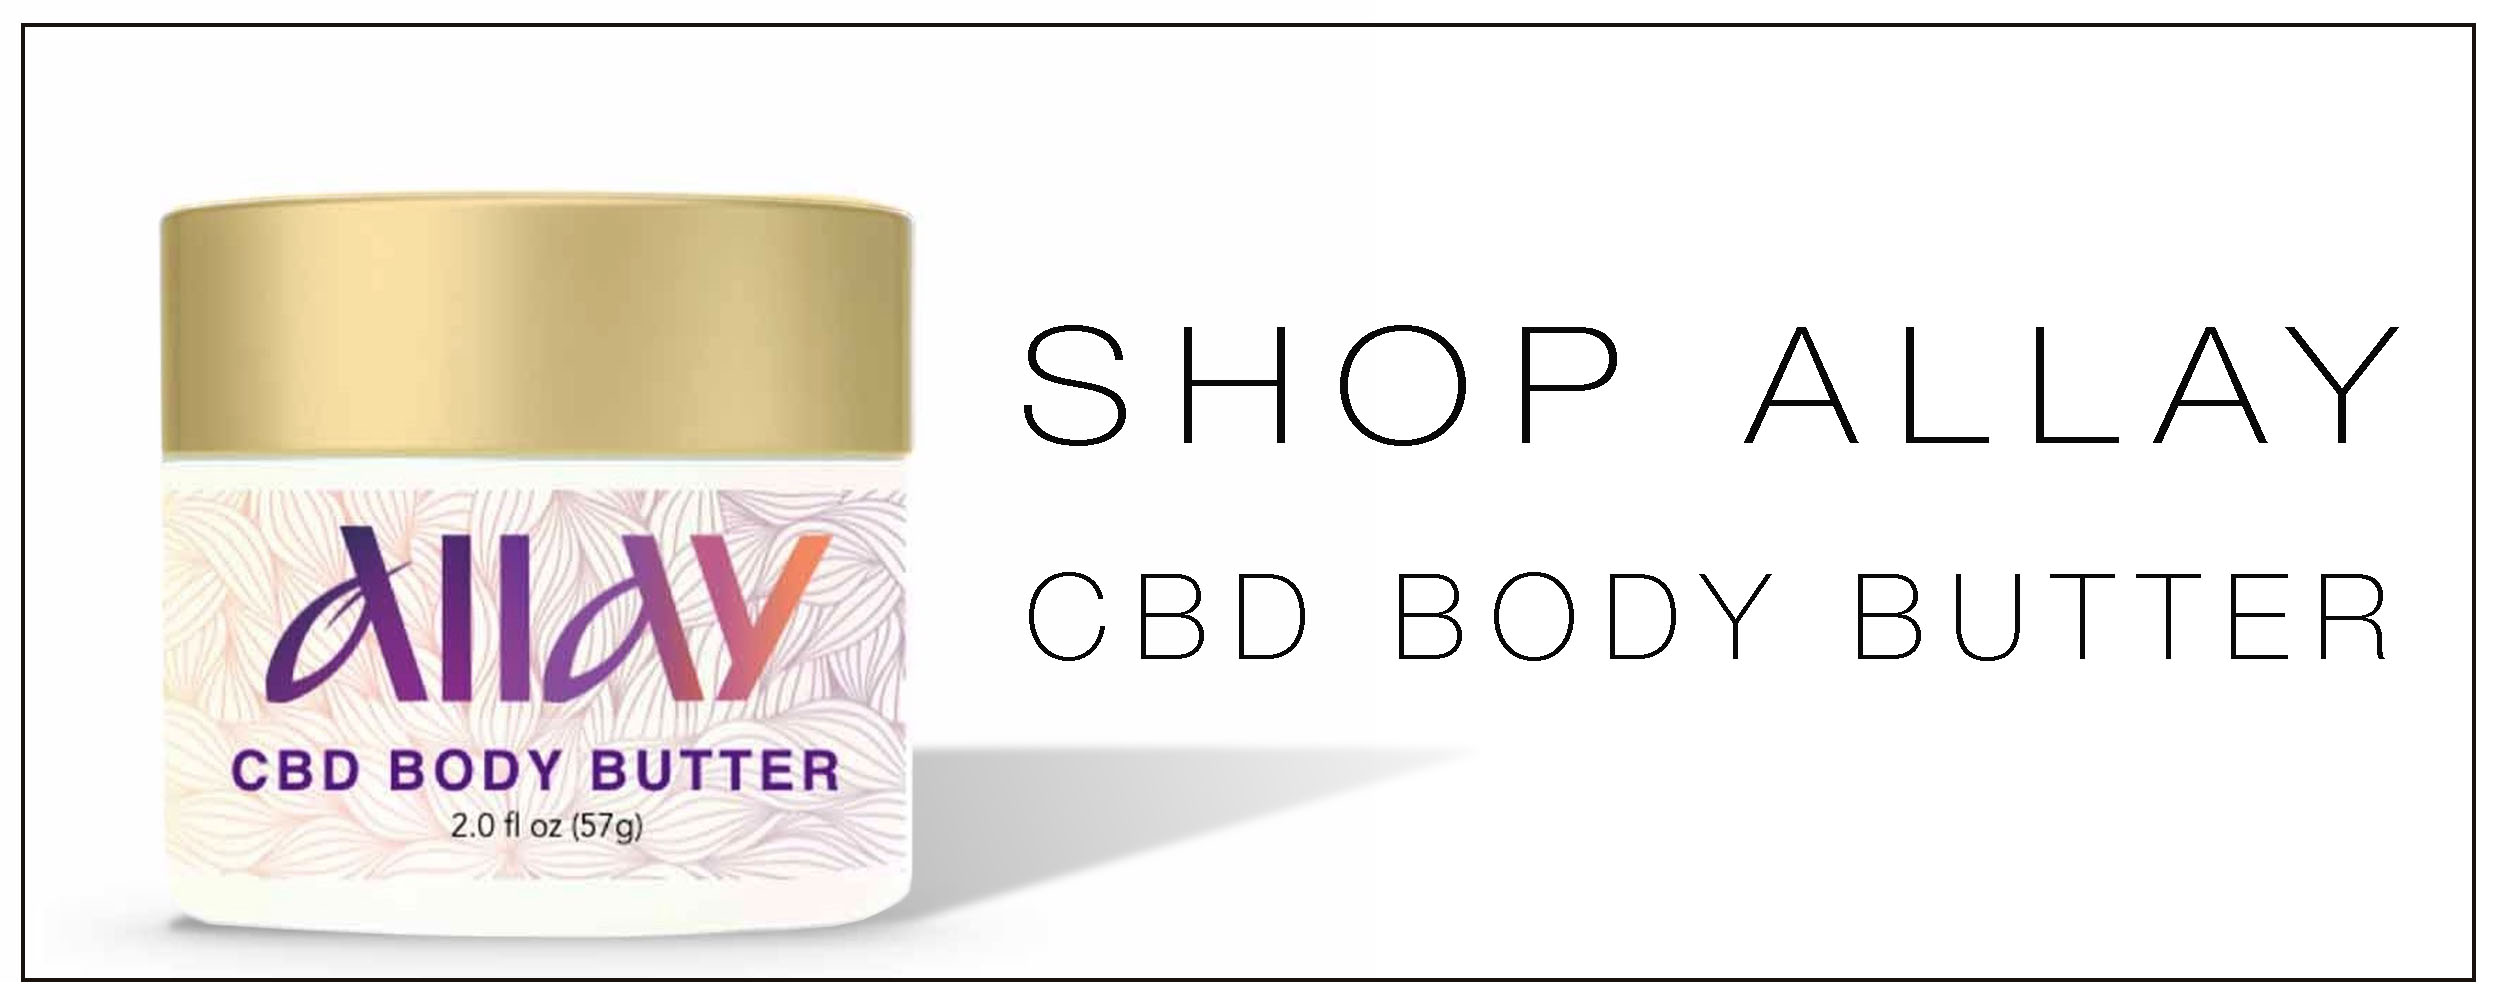 SHOP ALLAY CBD BODY BUTTER.jpg